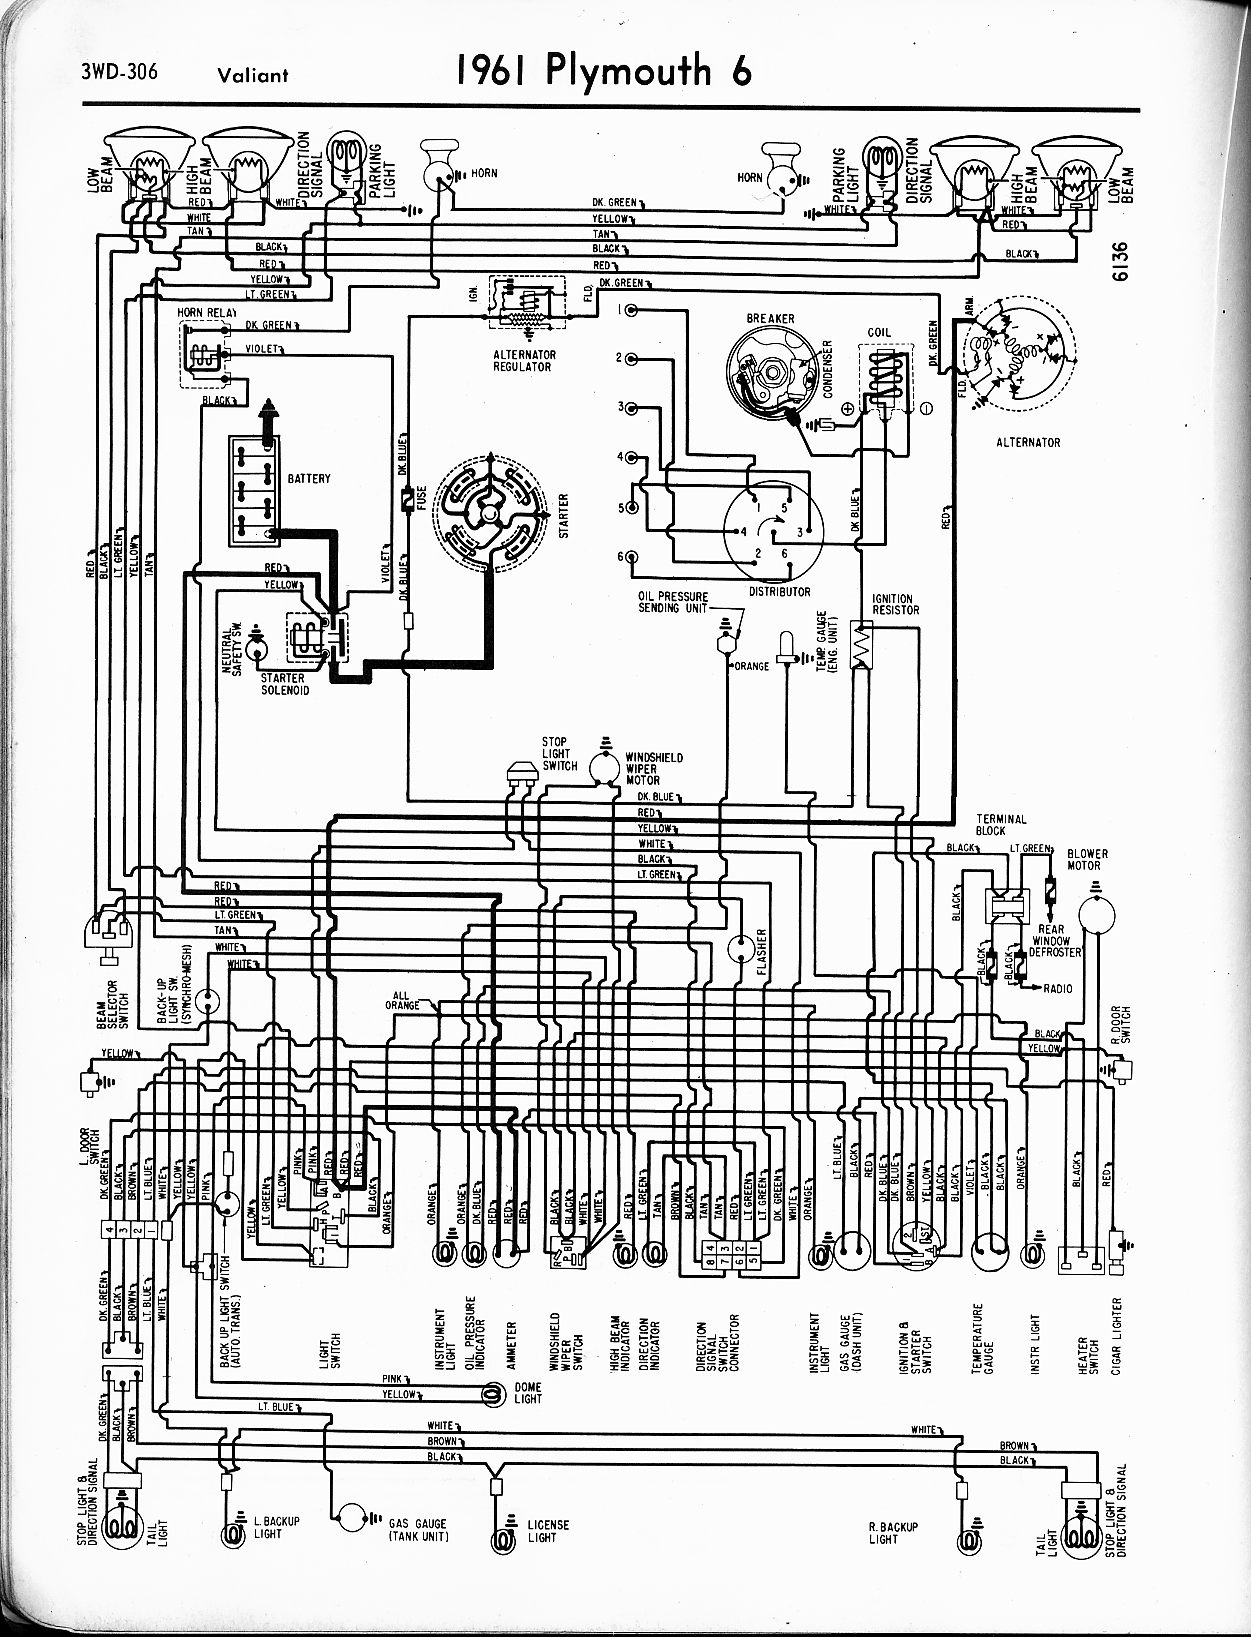 1957 plymouth wiring diagram wiring diagrams 68 plymouth wiring diagram wiring diagram